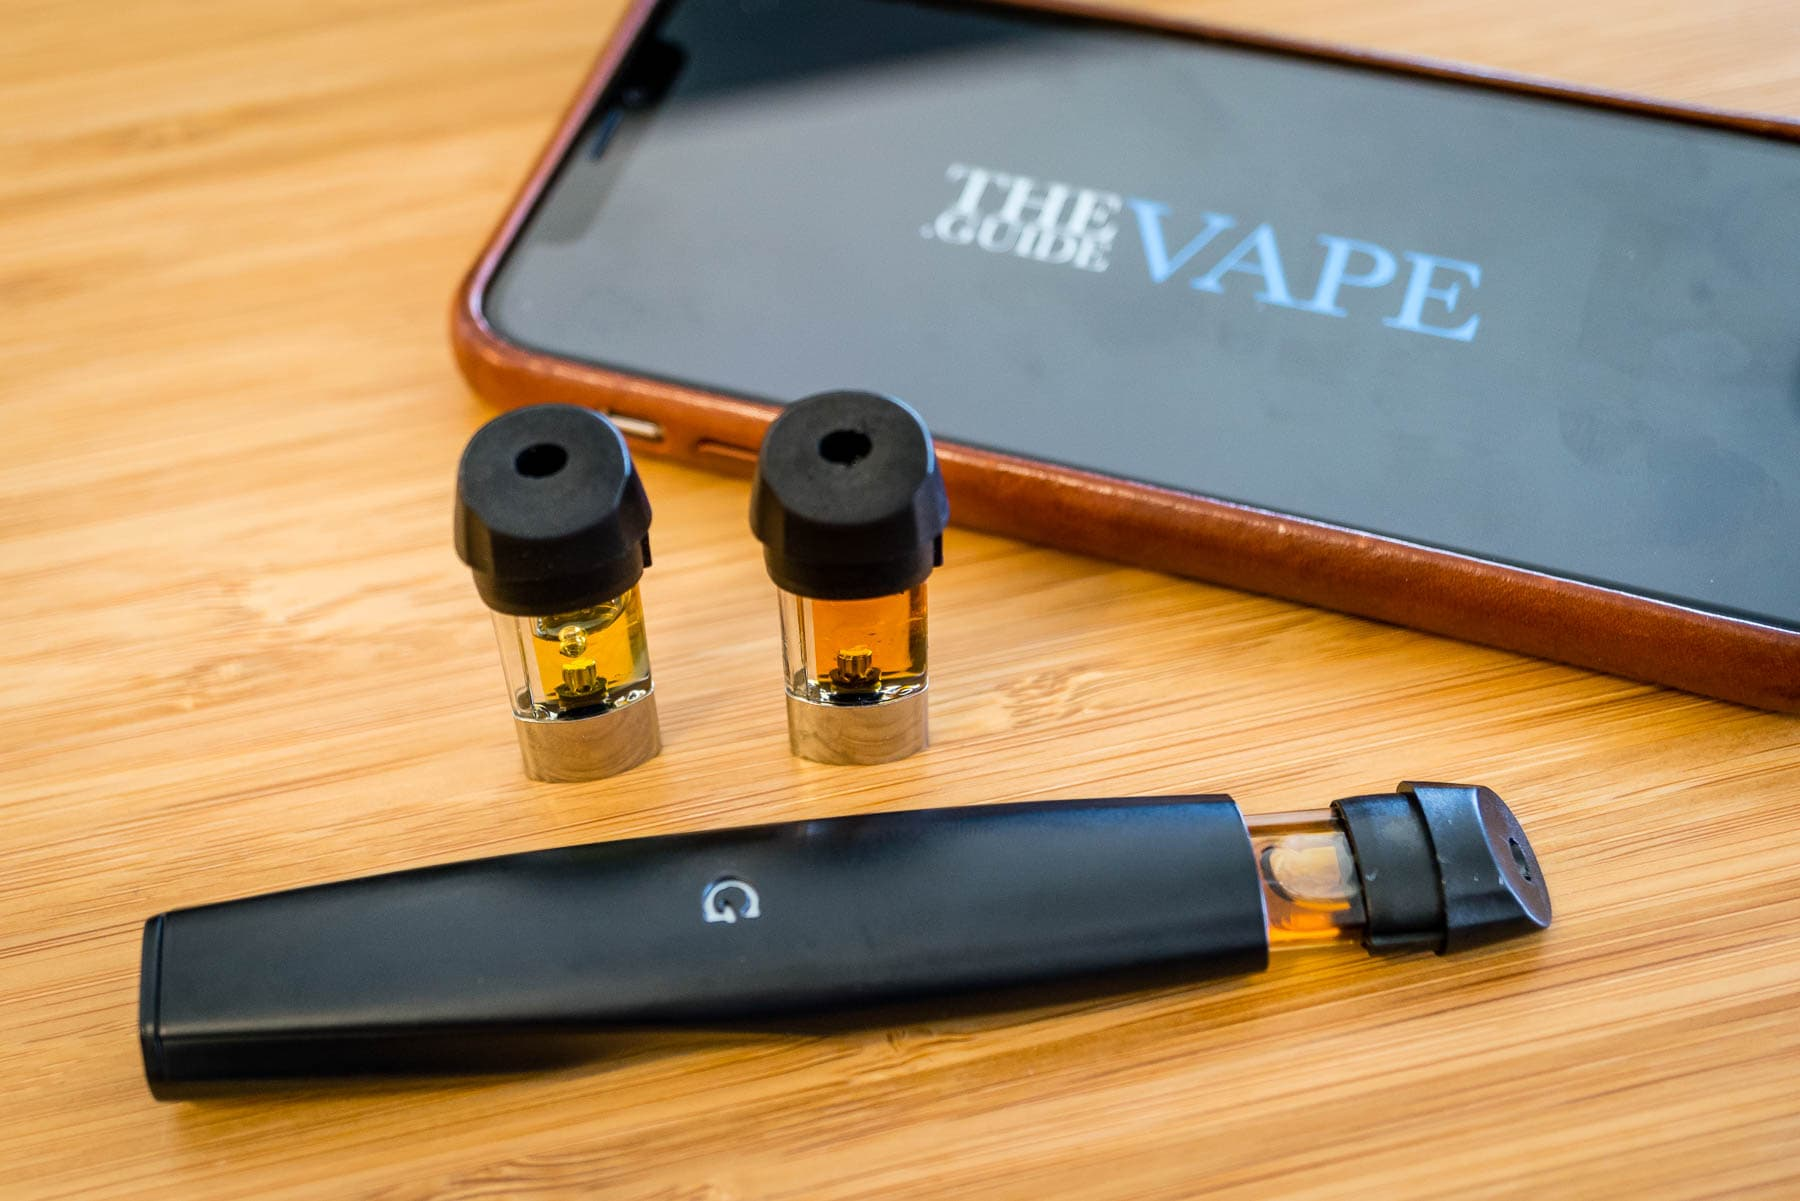 G Pen Gio Review: One of the Best Proprietary Oil Vapes